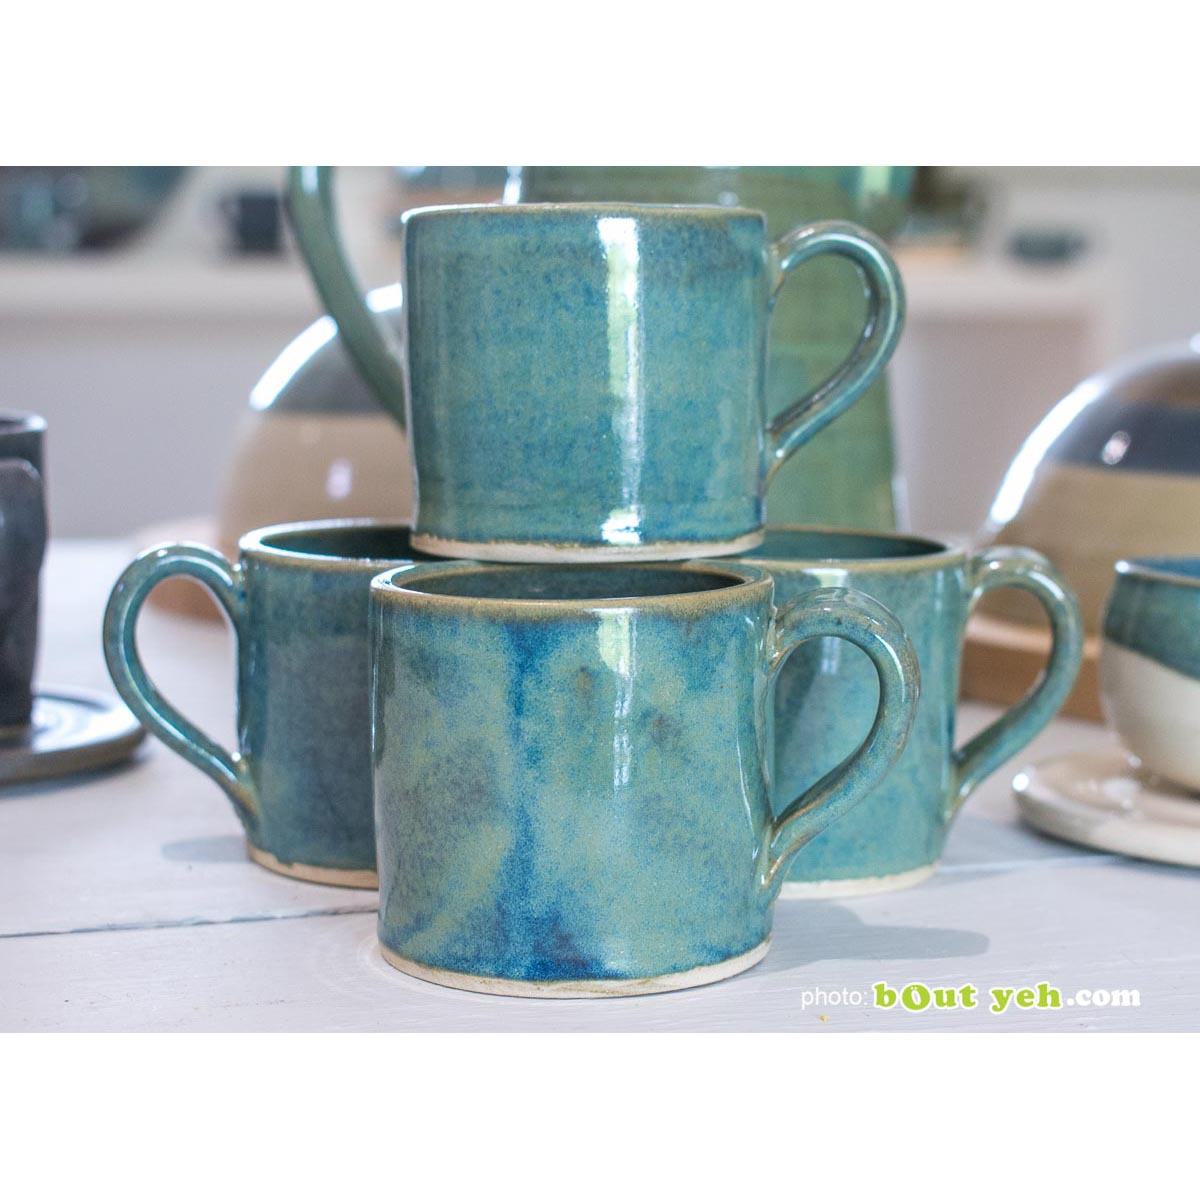 Contemporary hand made Irish pottery - tiffany blue and green straight sided espresso mug and saucer, from Bout Yeh arts and crafts gallery Belfast and Dublin, photo 1451